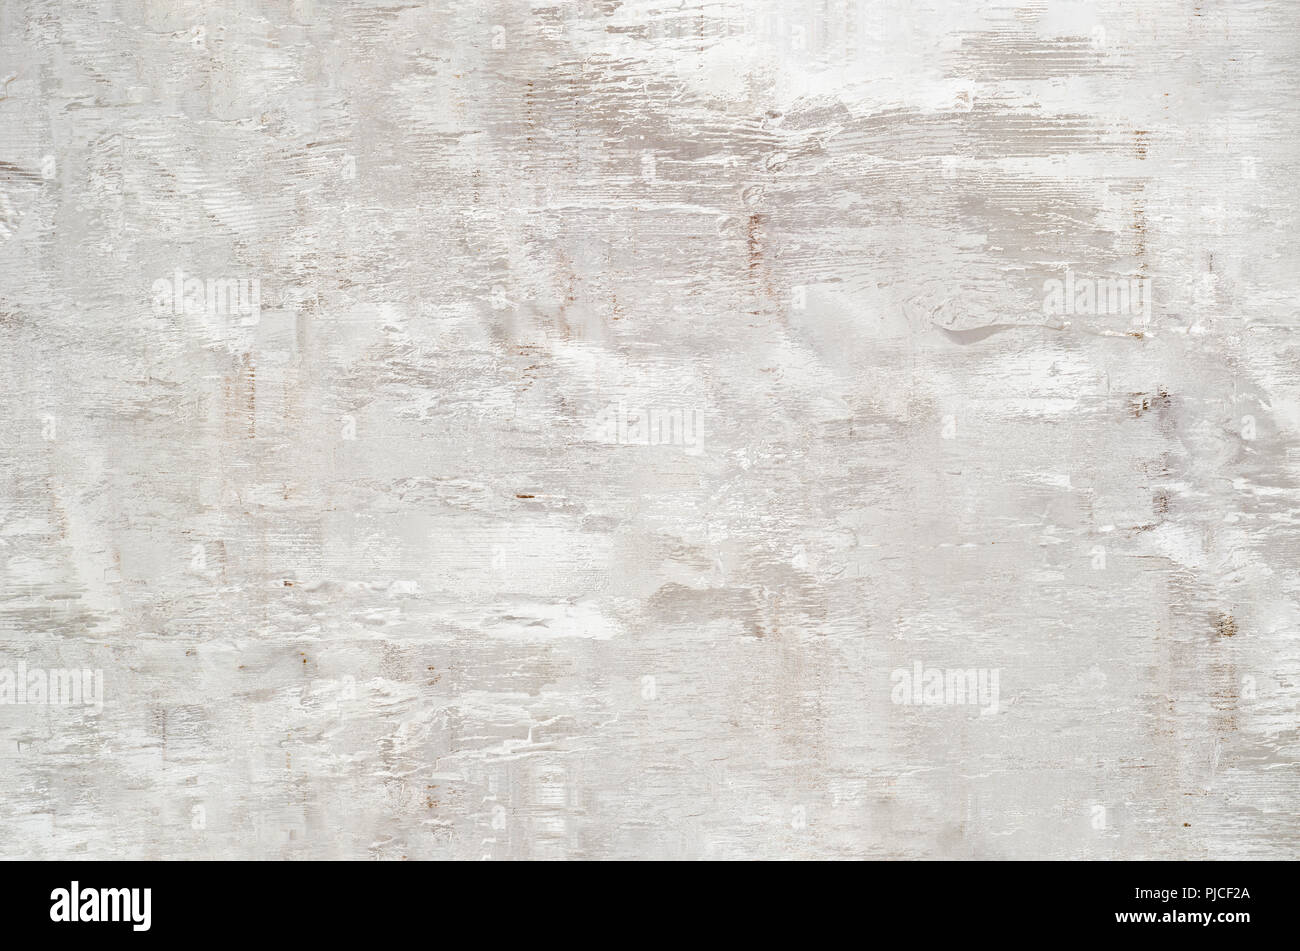 Abstract background of worn and dilapidated appearance. Warm white with a pink hue and woody elements in the texture. - Stock Image